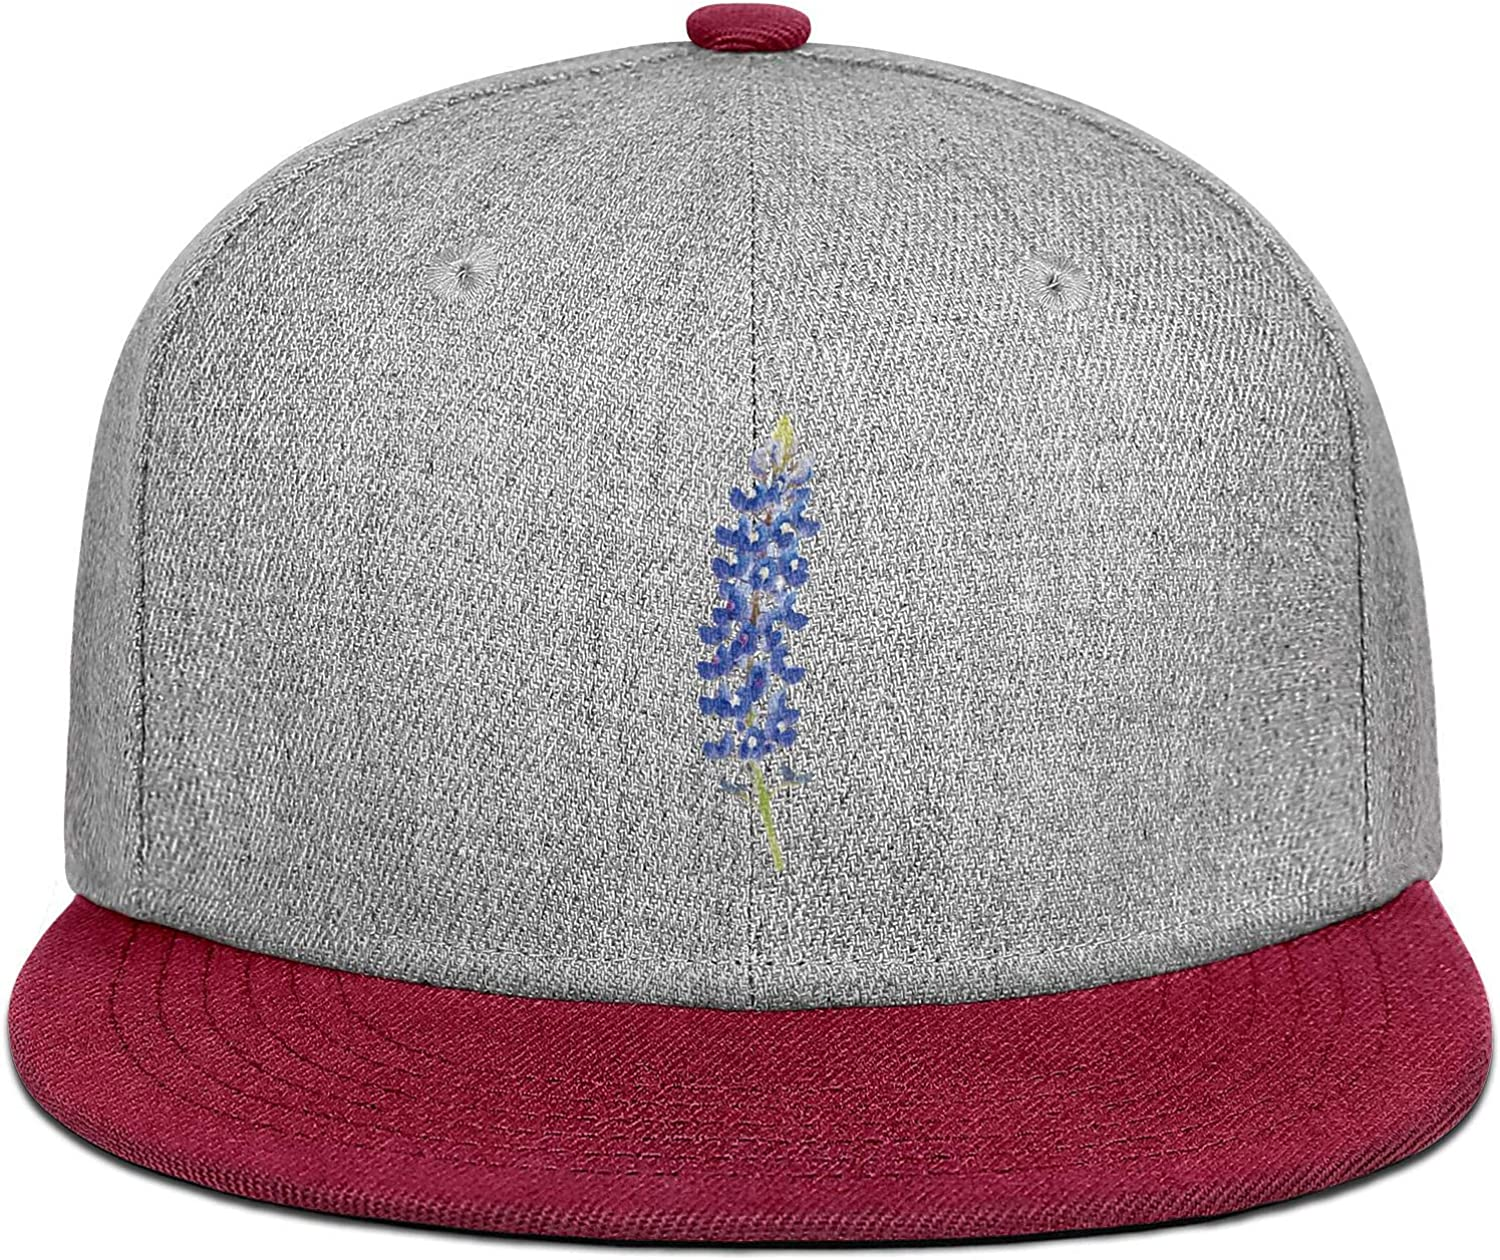 Mens Women Flat Hats Texas Bluebonnet State Flower Snapback Fits Cap